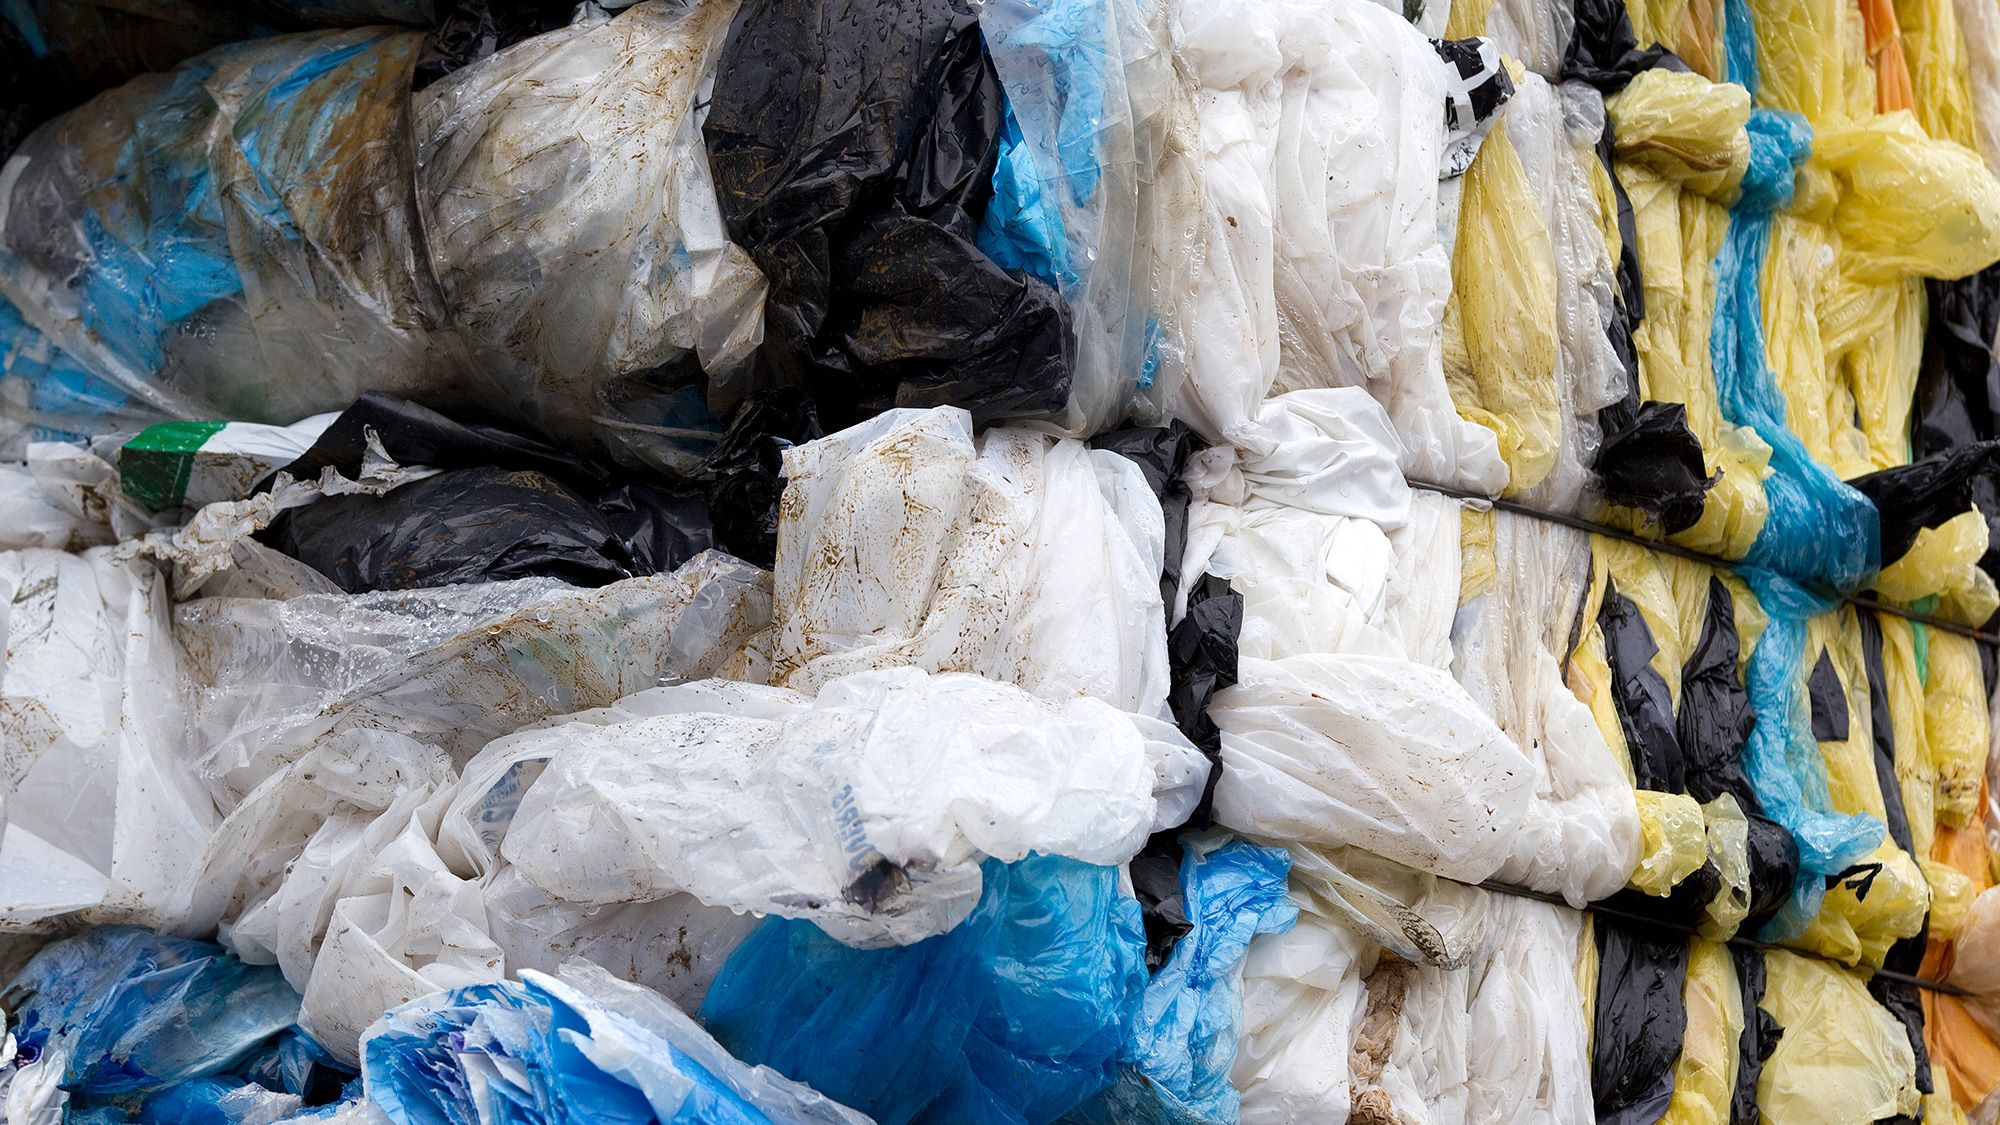 Plastic bags baled for recycling